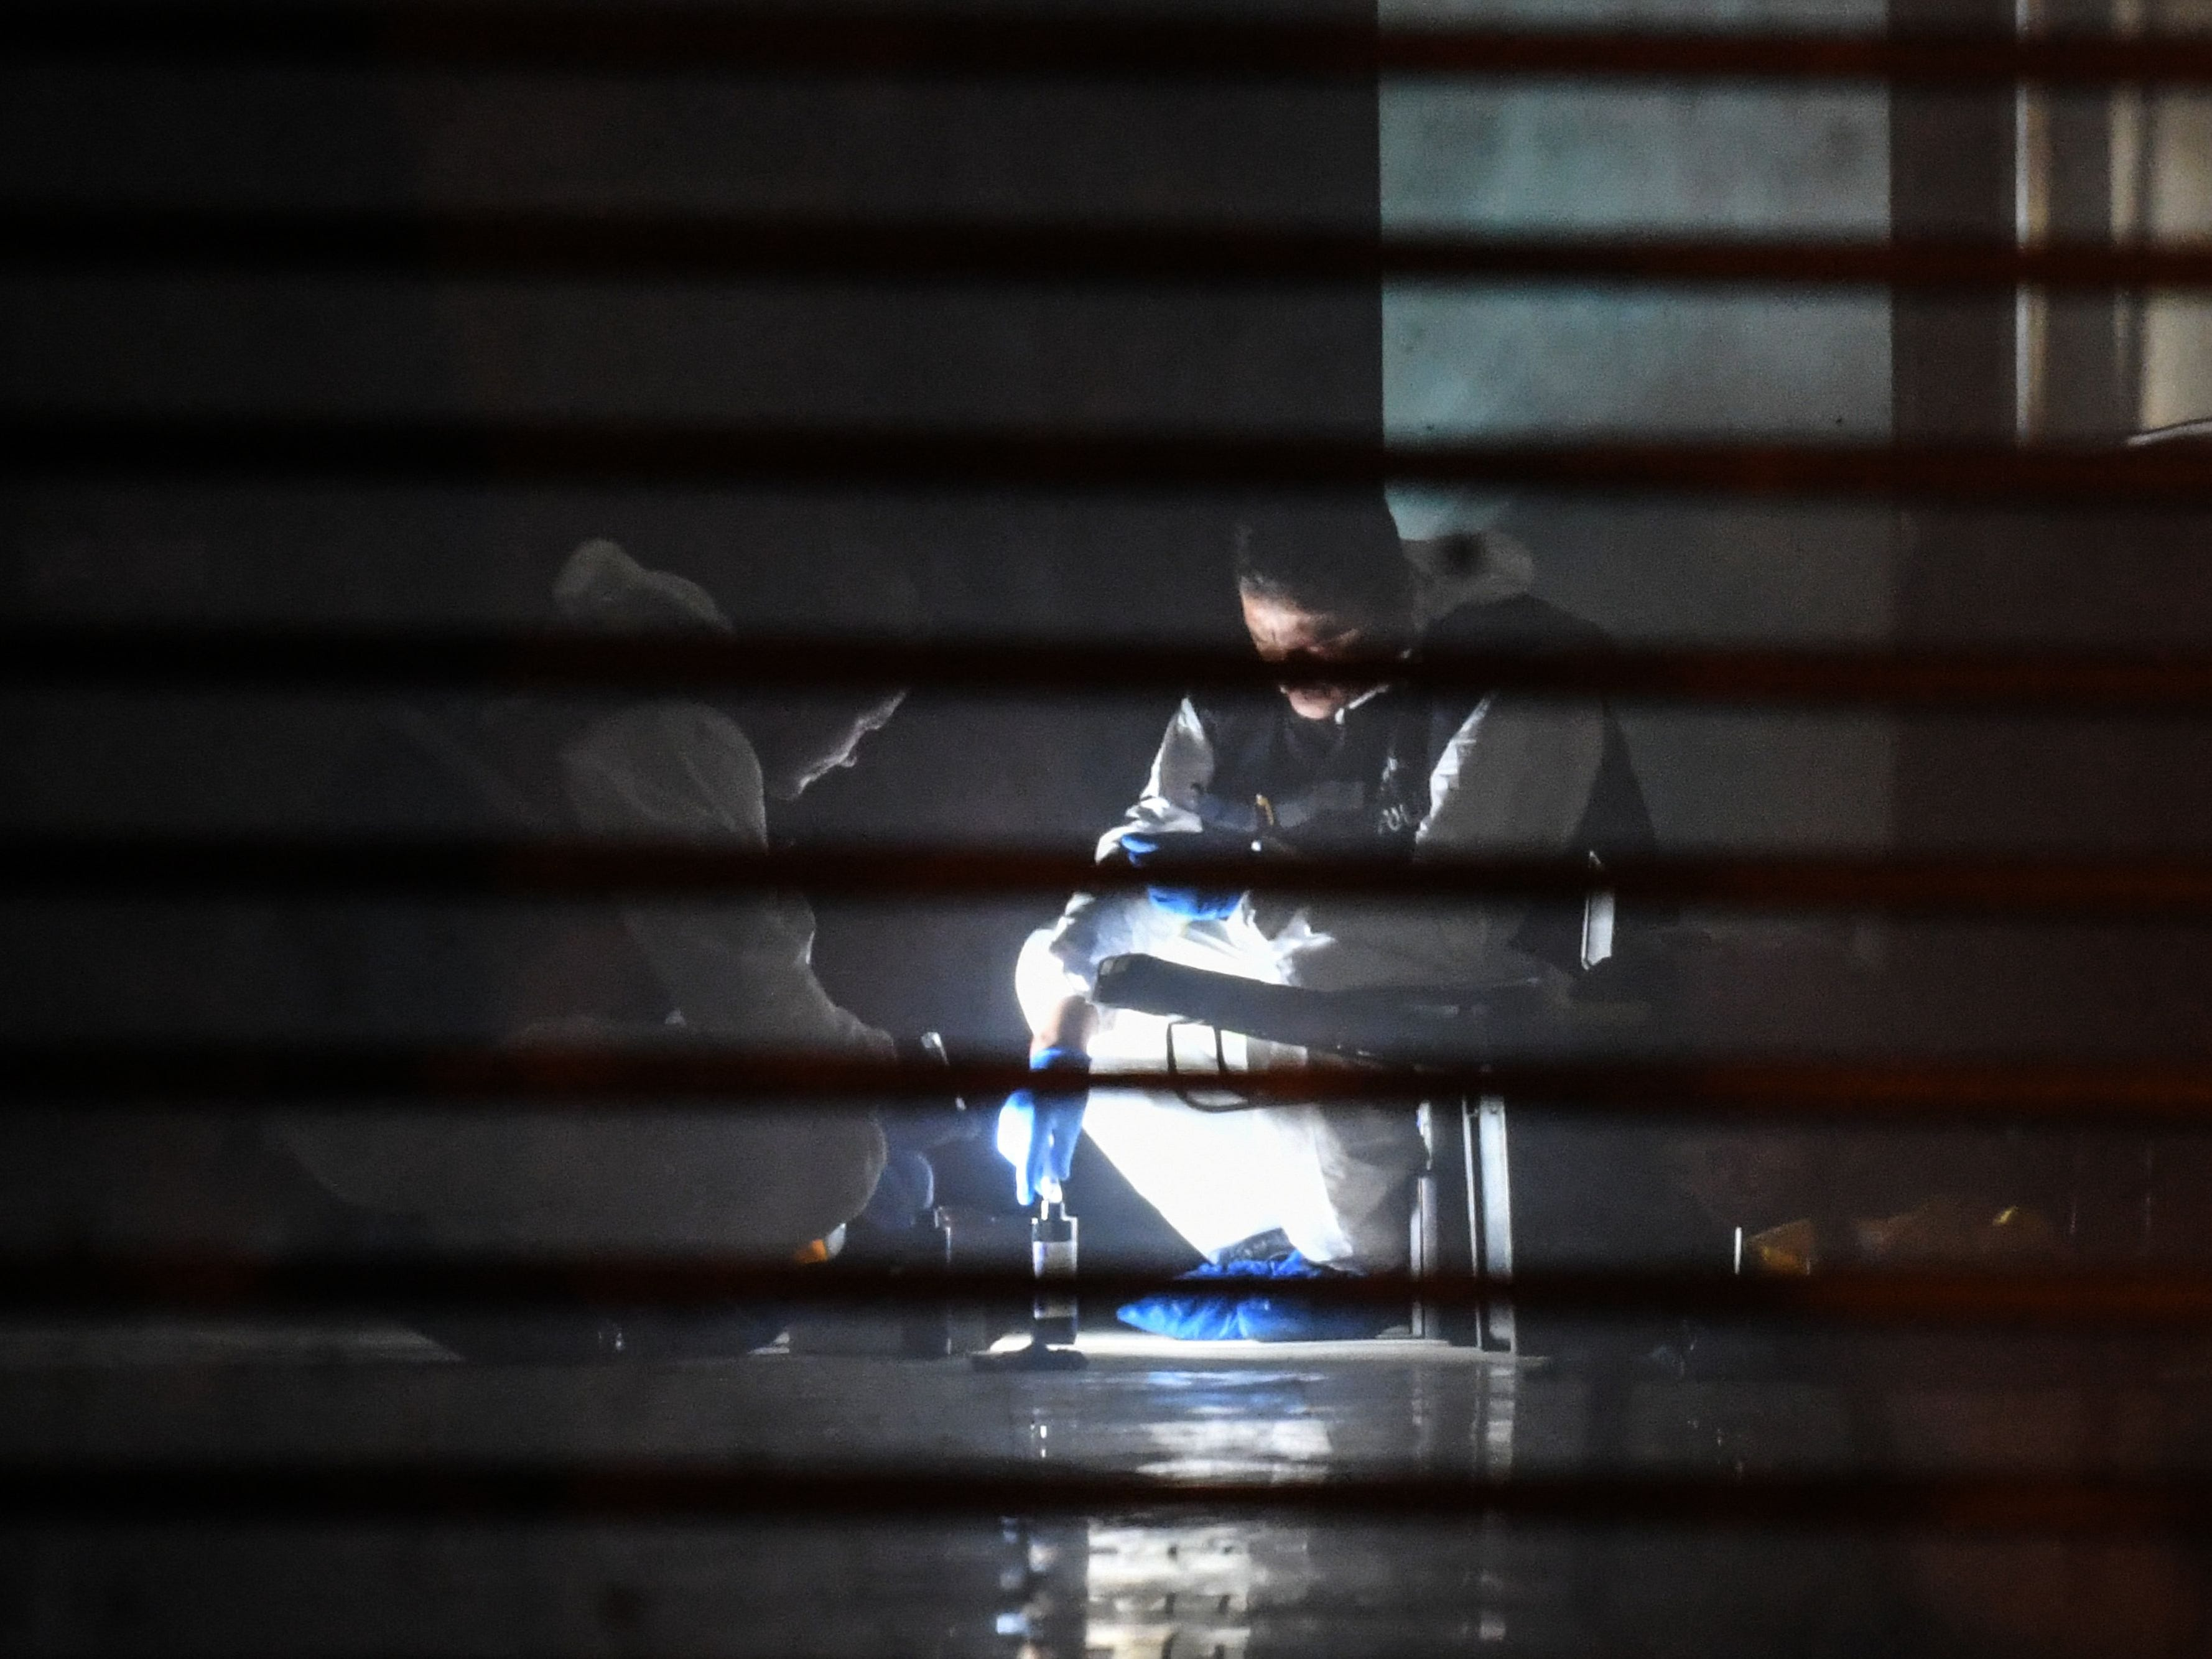 Turkish forensic search for evidence at the garage of Saudi Arabia's Consul General Mohammad al-Otaibi, Oct. 17, 2018, in Istanbul.